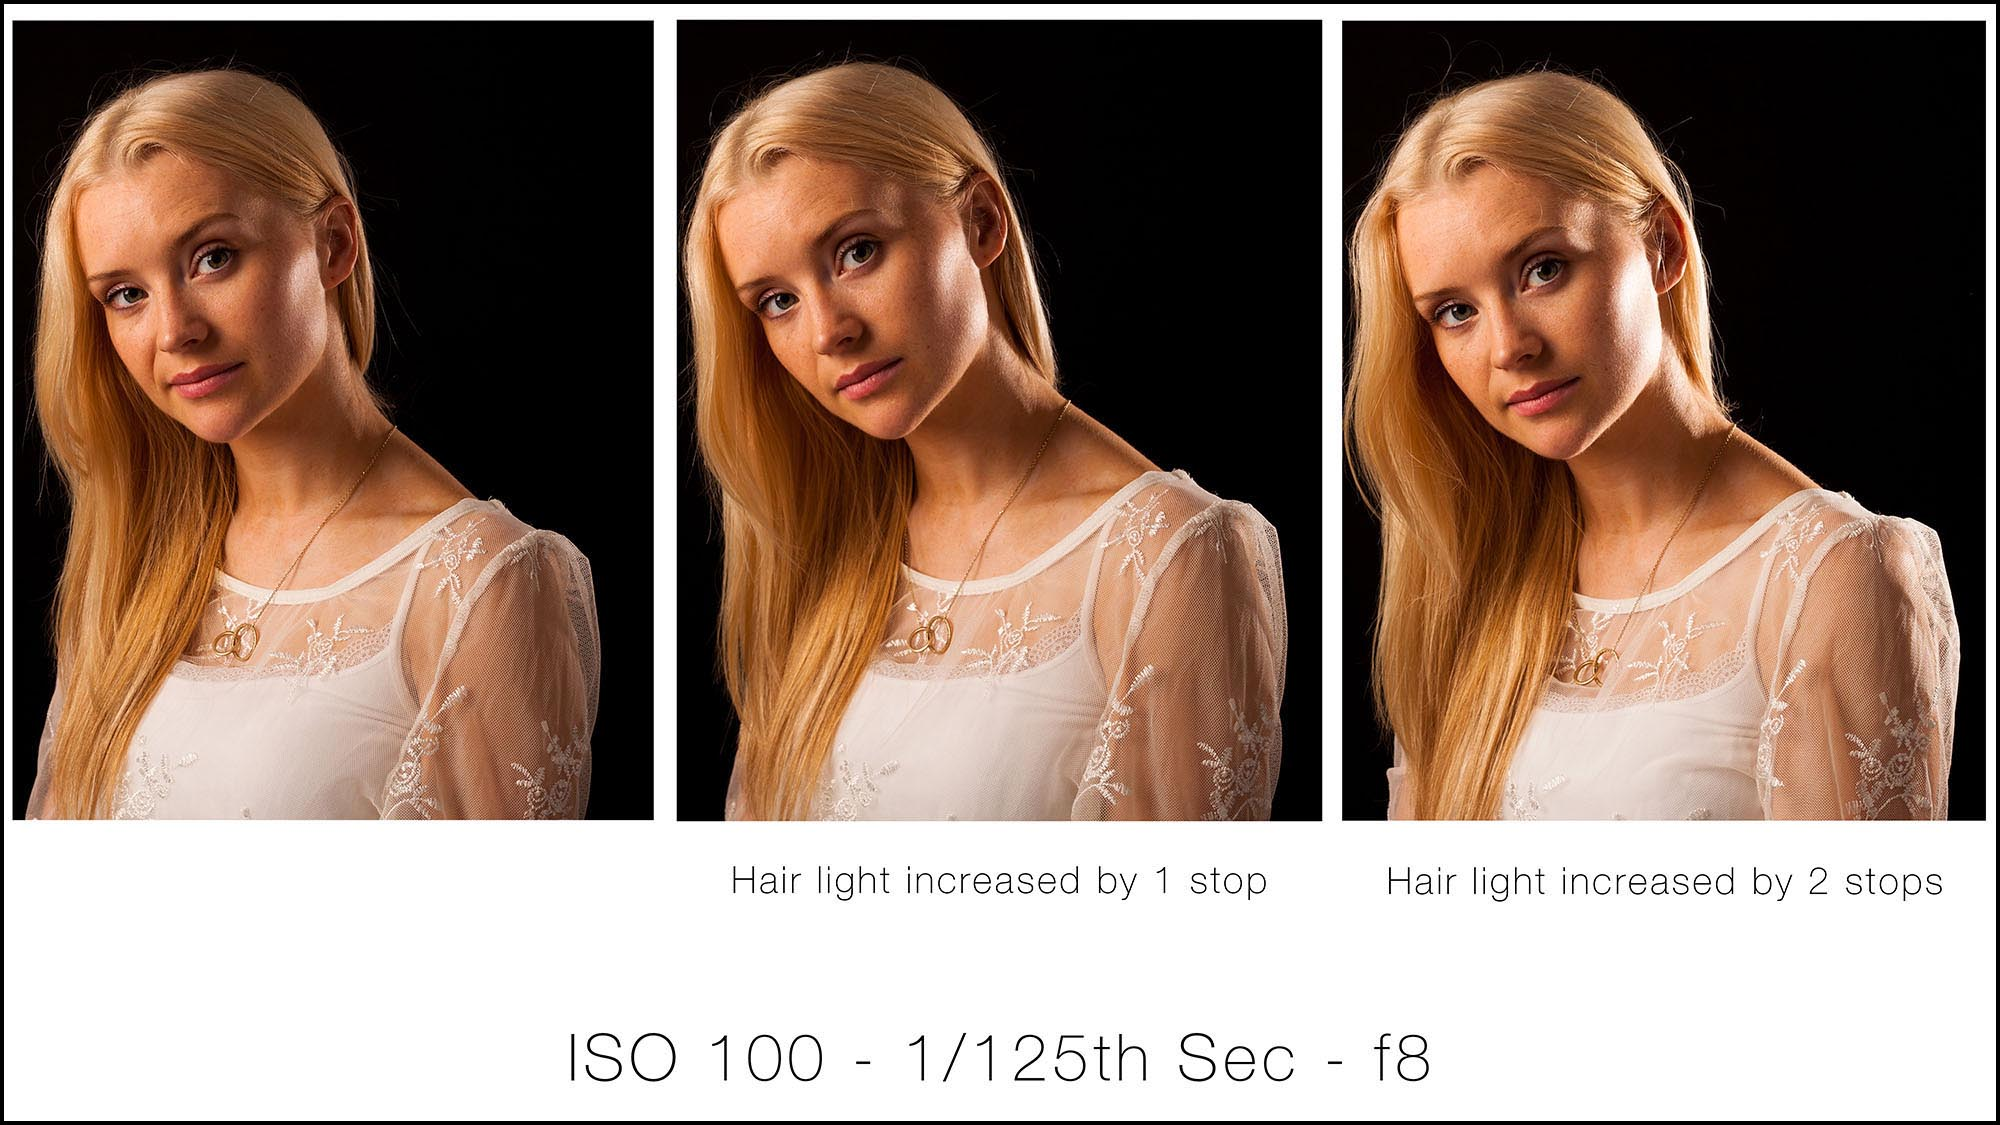 Lesson 10 – Introducing fill and hair lights - Here we'll look at introducing fill and hair lights. You'll be shown how to measure and balance the power of multiple lights for varied effects and look at how to use master and slave flashes when using multiple lights.